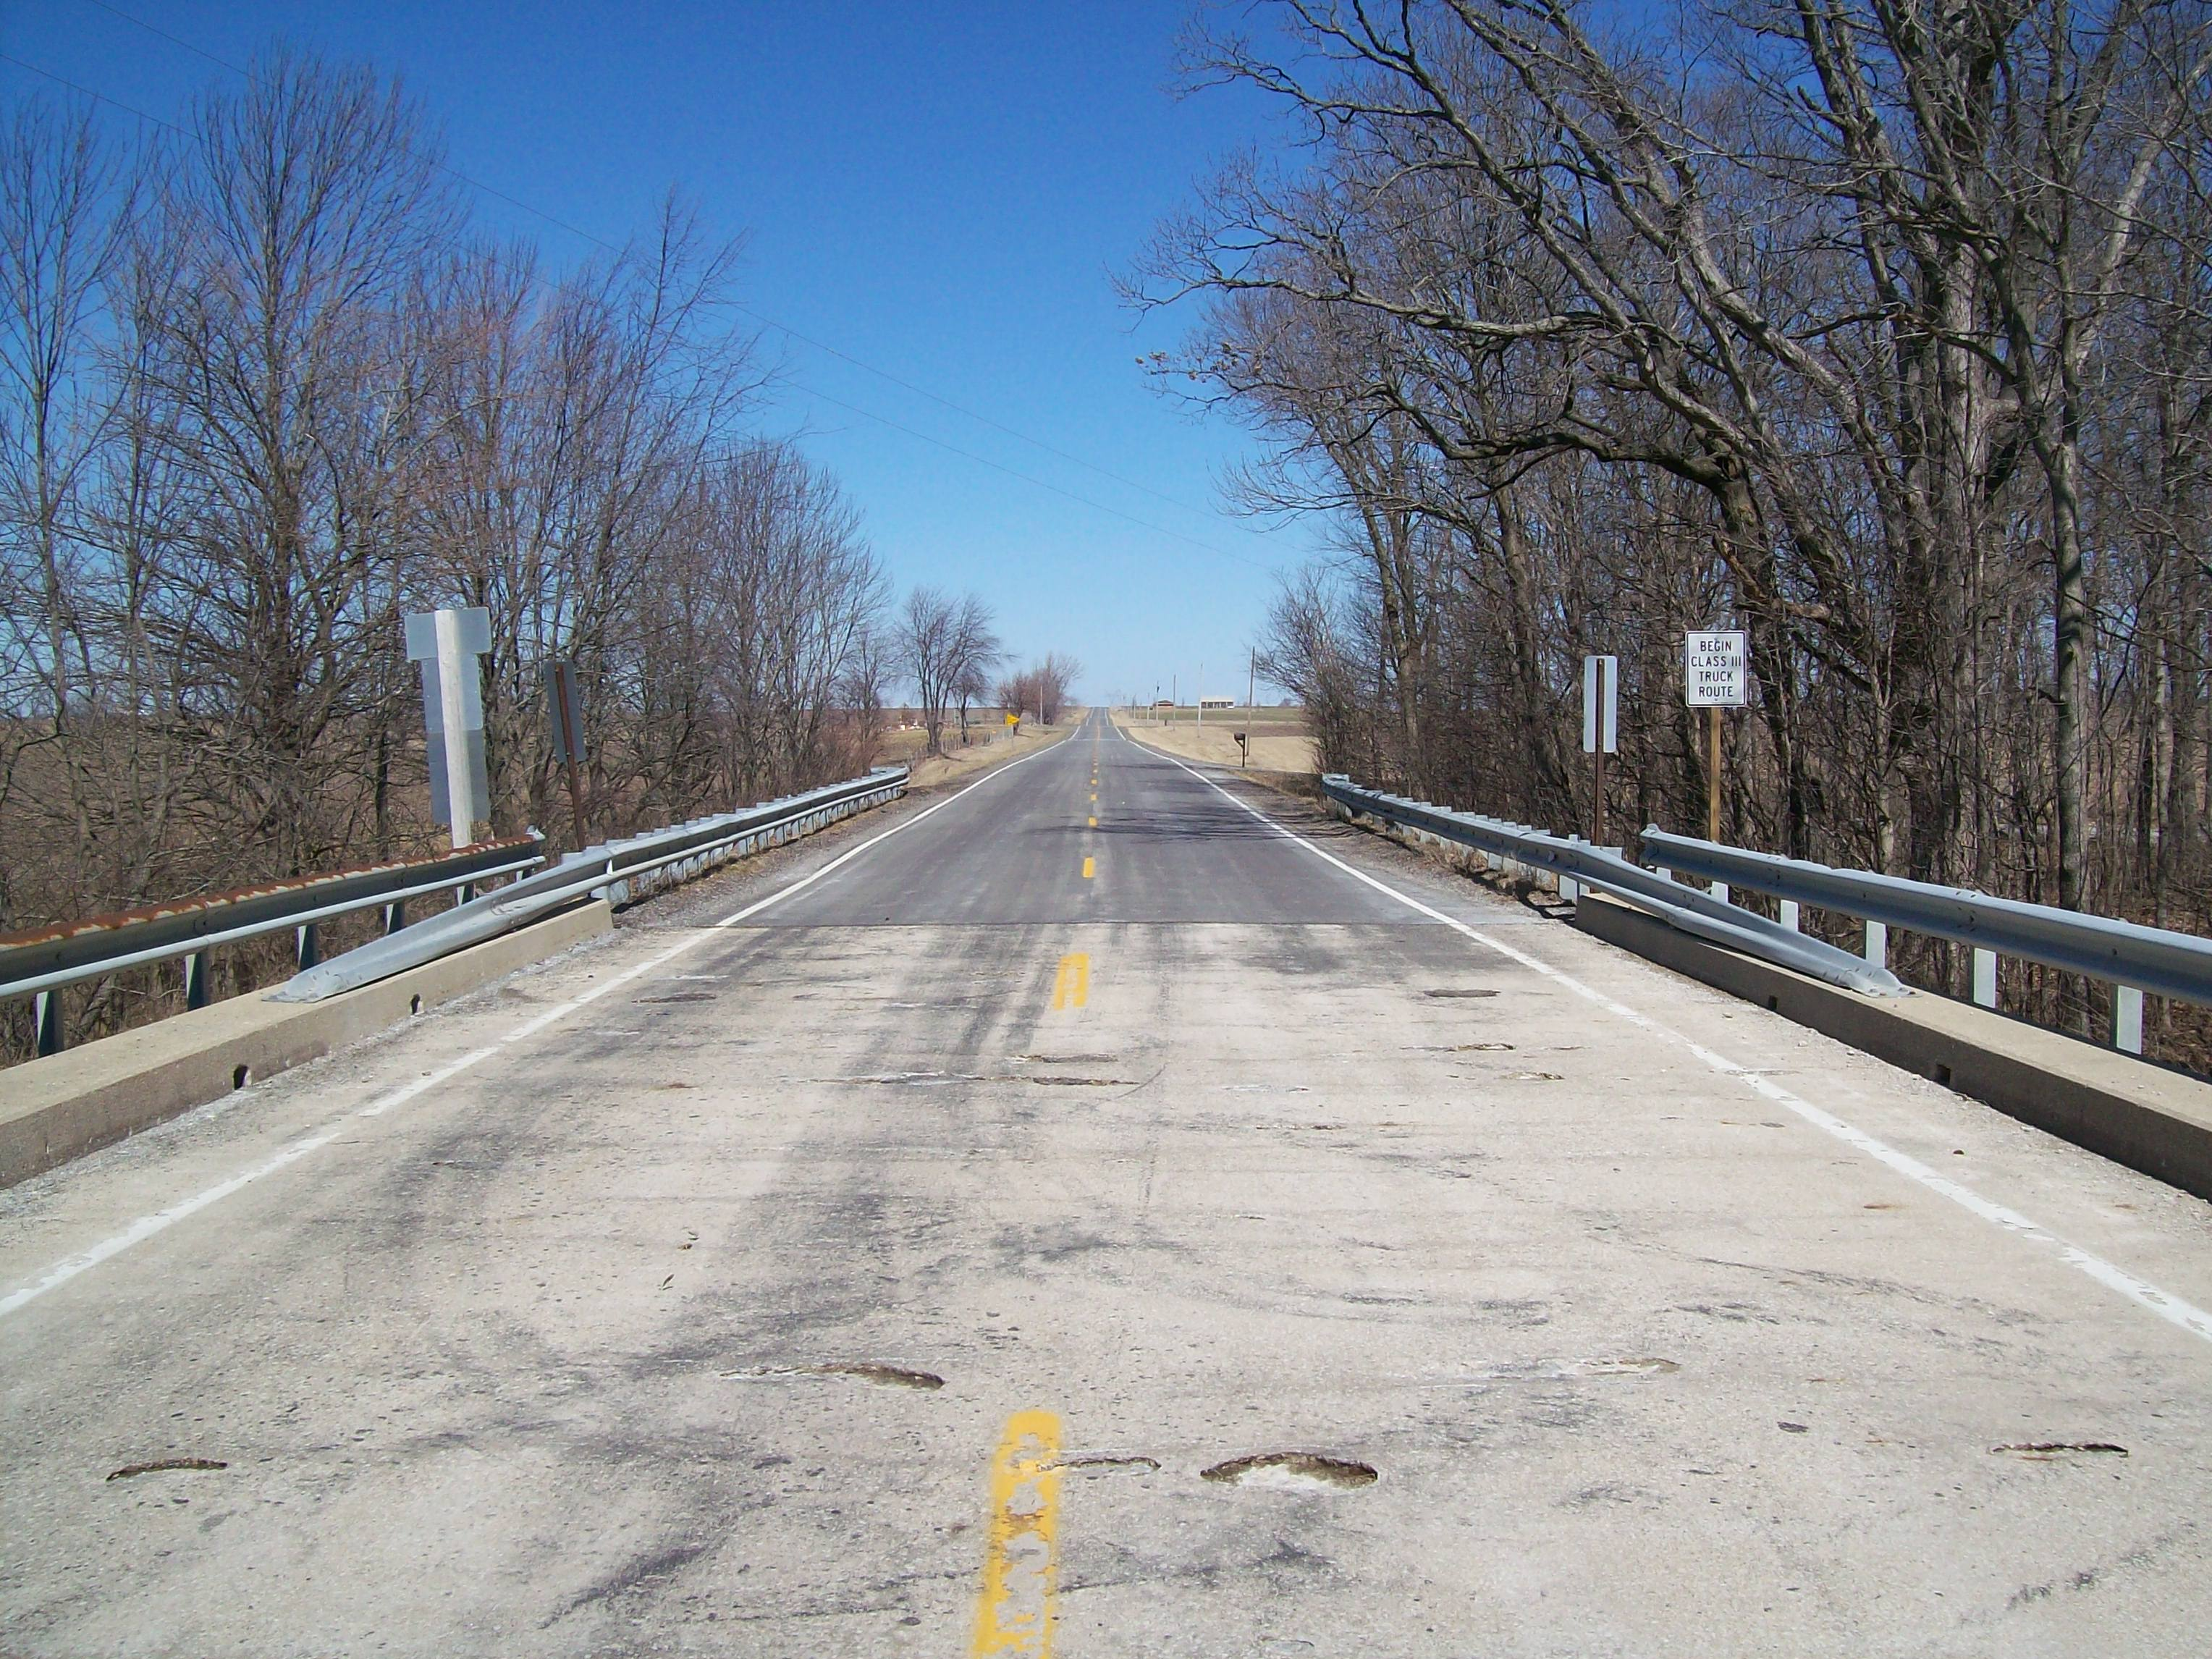 Lexington LeRoy Road - Looking north from the Mackinaw River Bridge